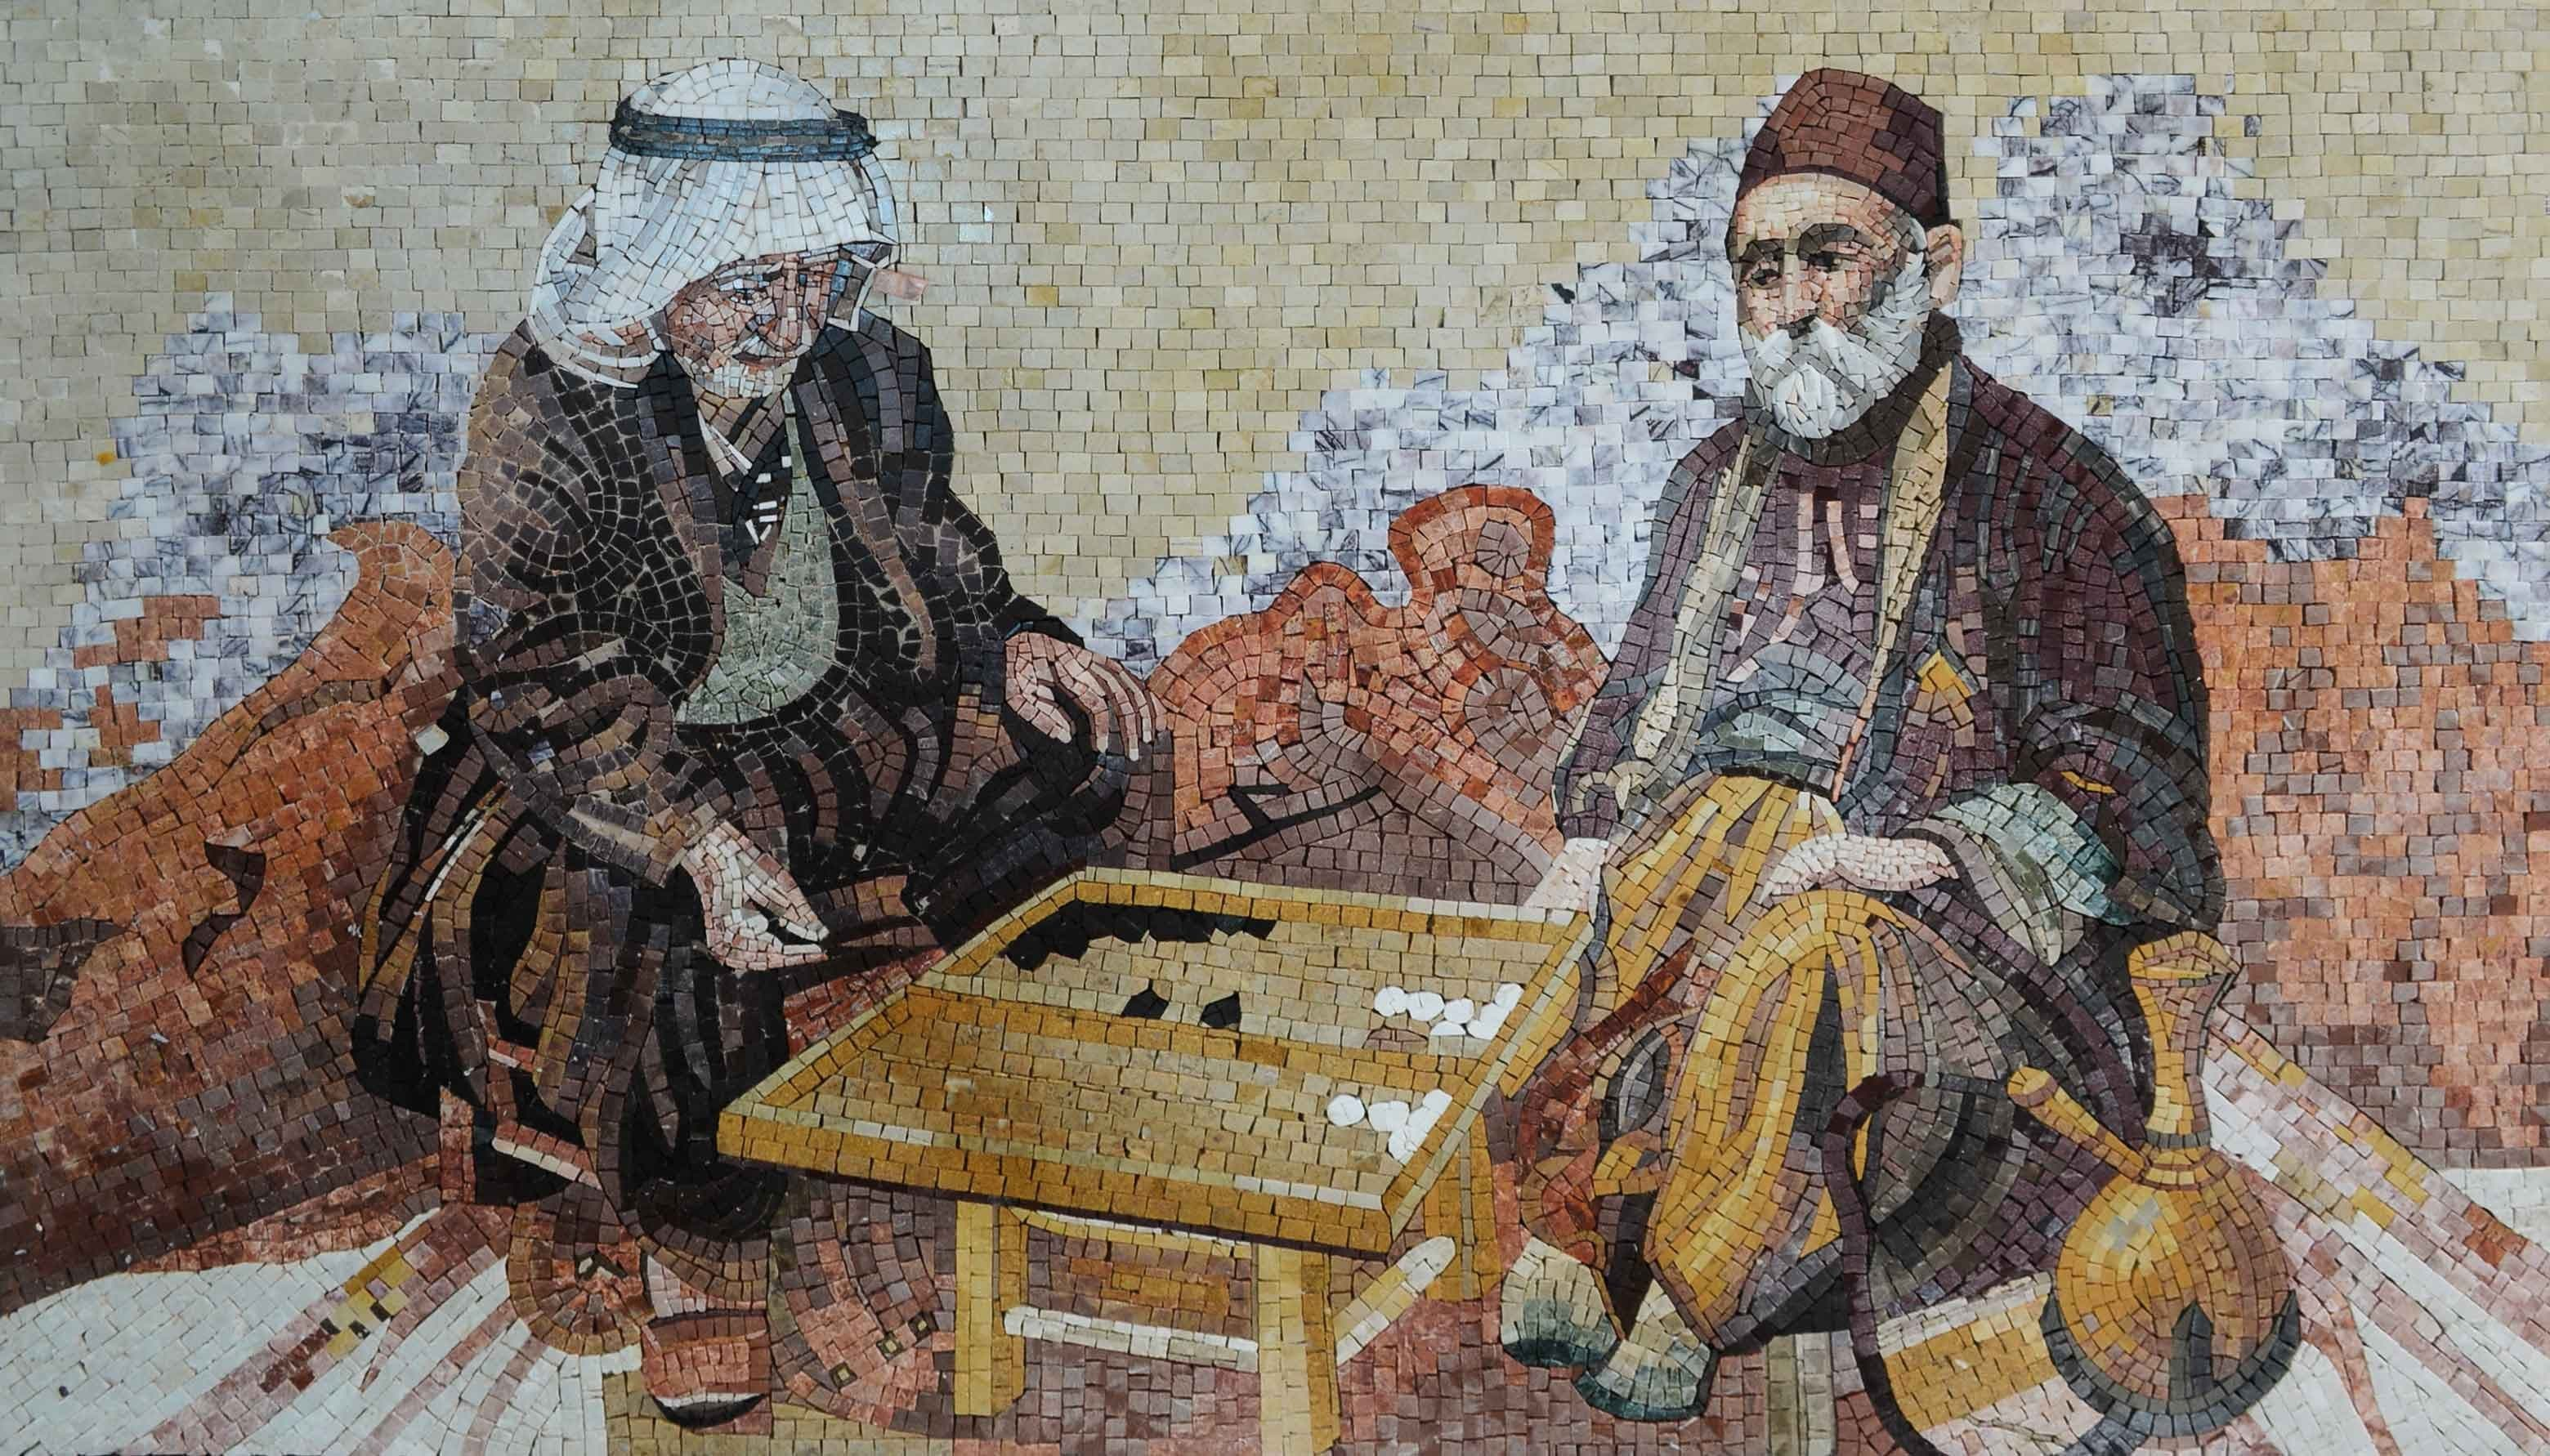 Playing Backgammon Marble Mosaic Mural Pic